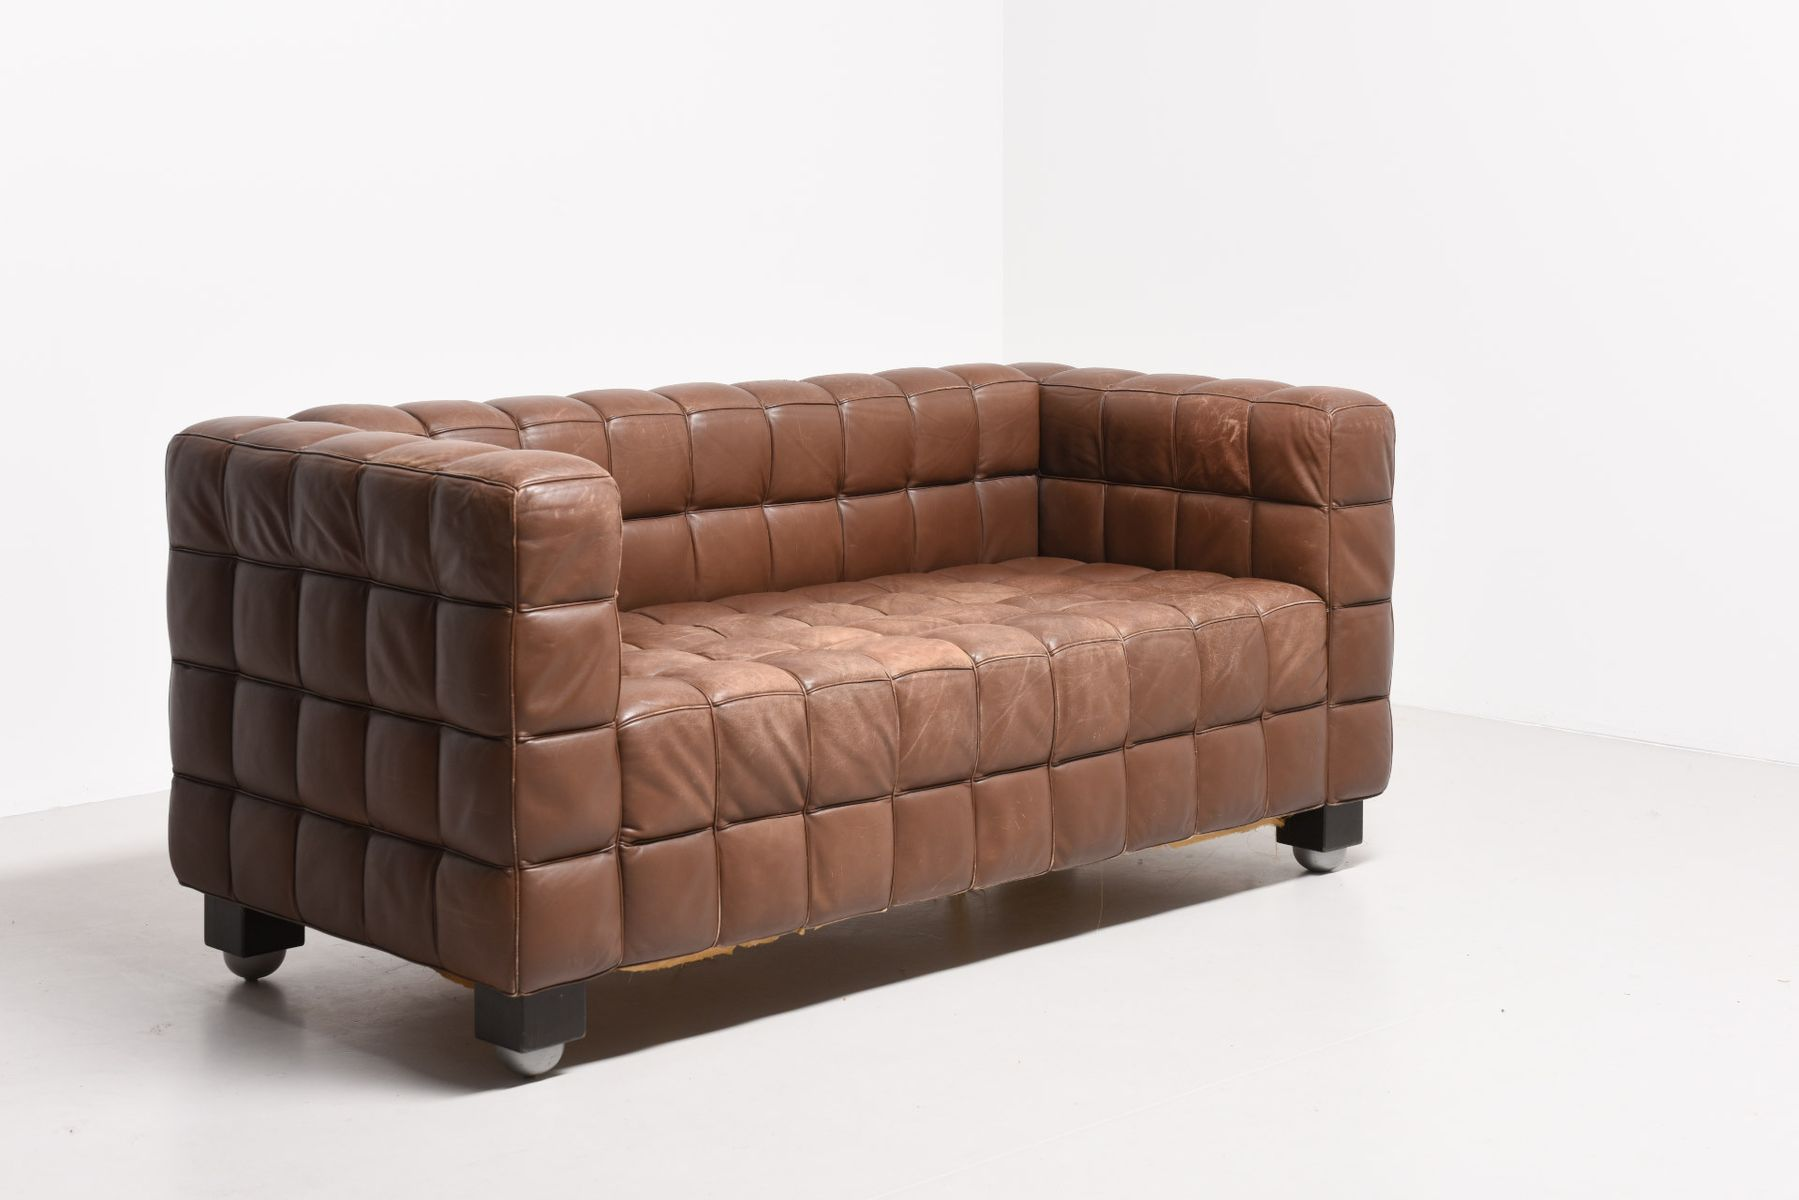 Kubus Brown Leather Sofa By Josef Hoffmann For Wittmann, 1910s For Sale At  Pamono